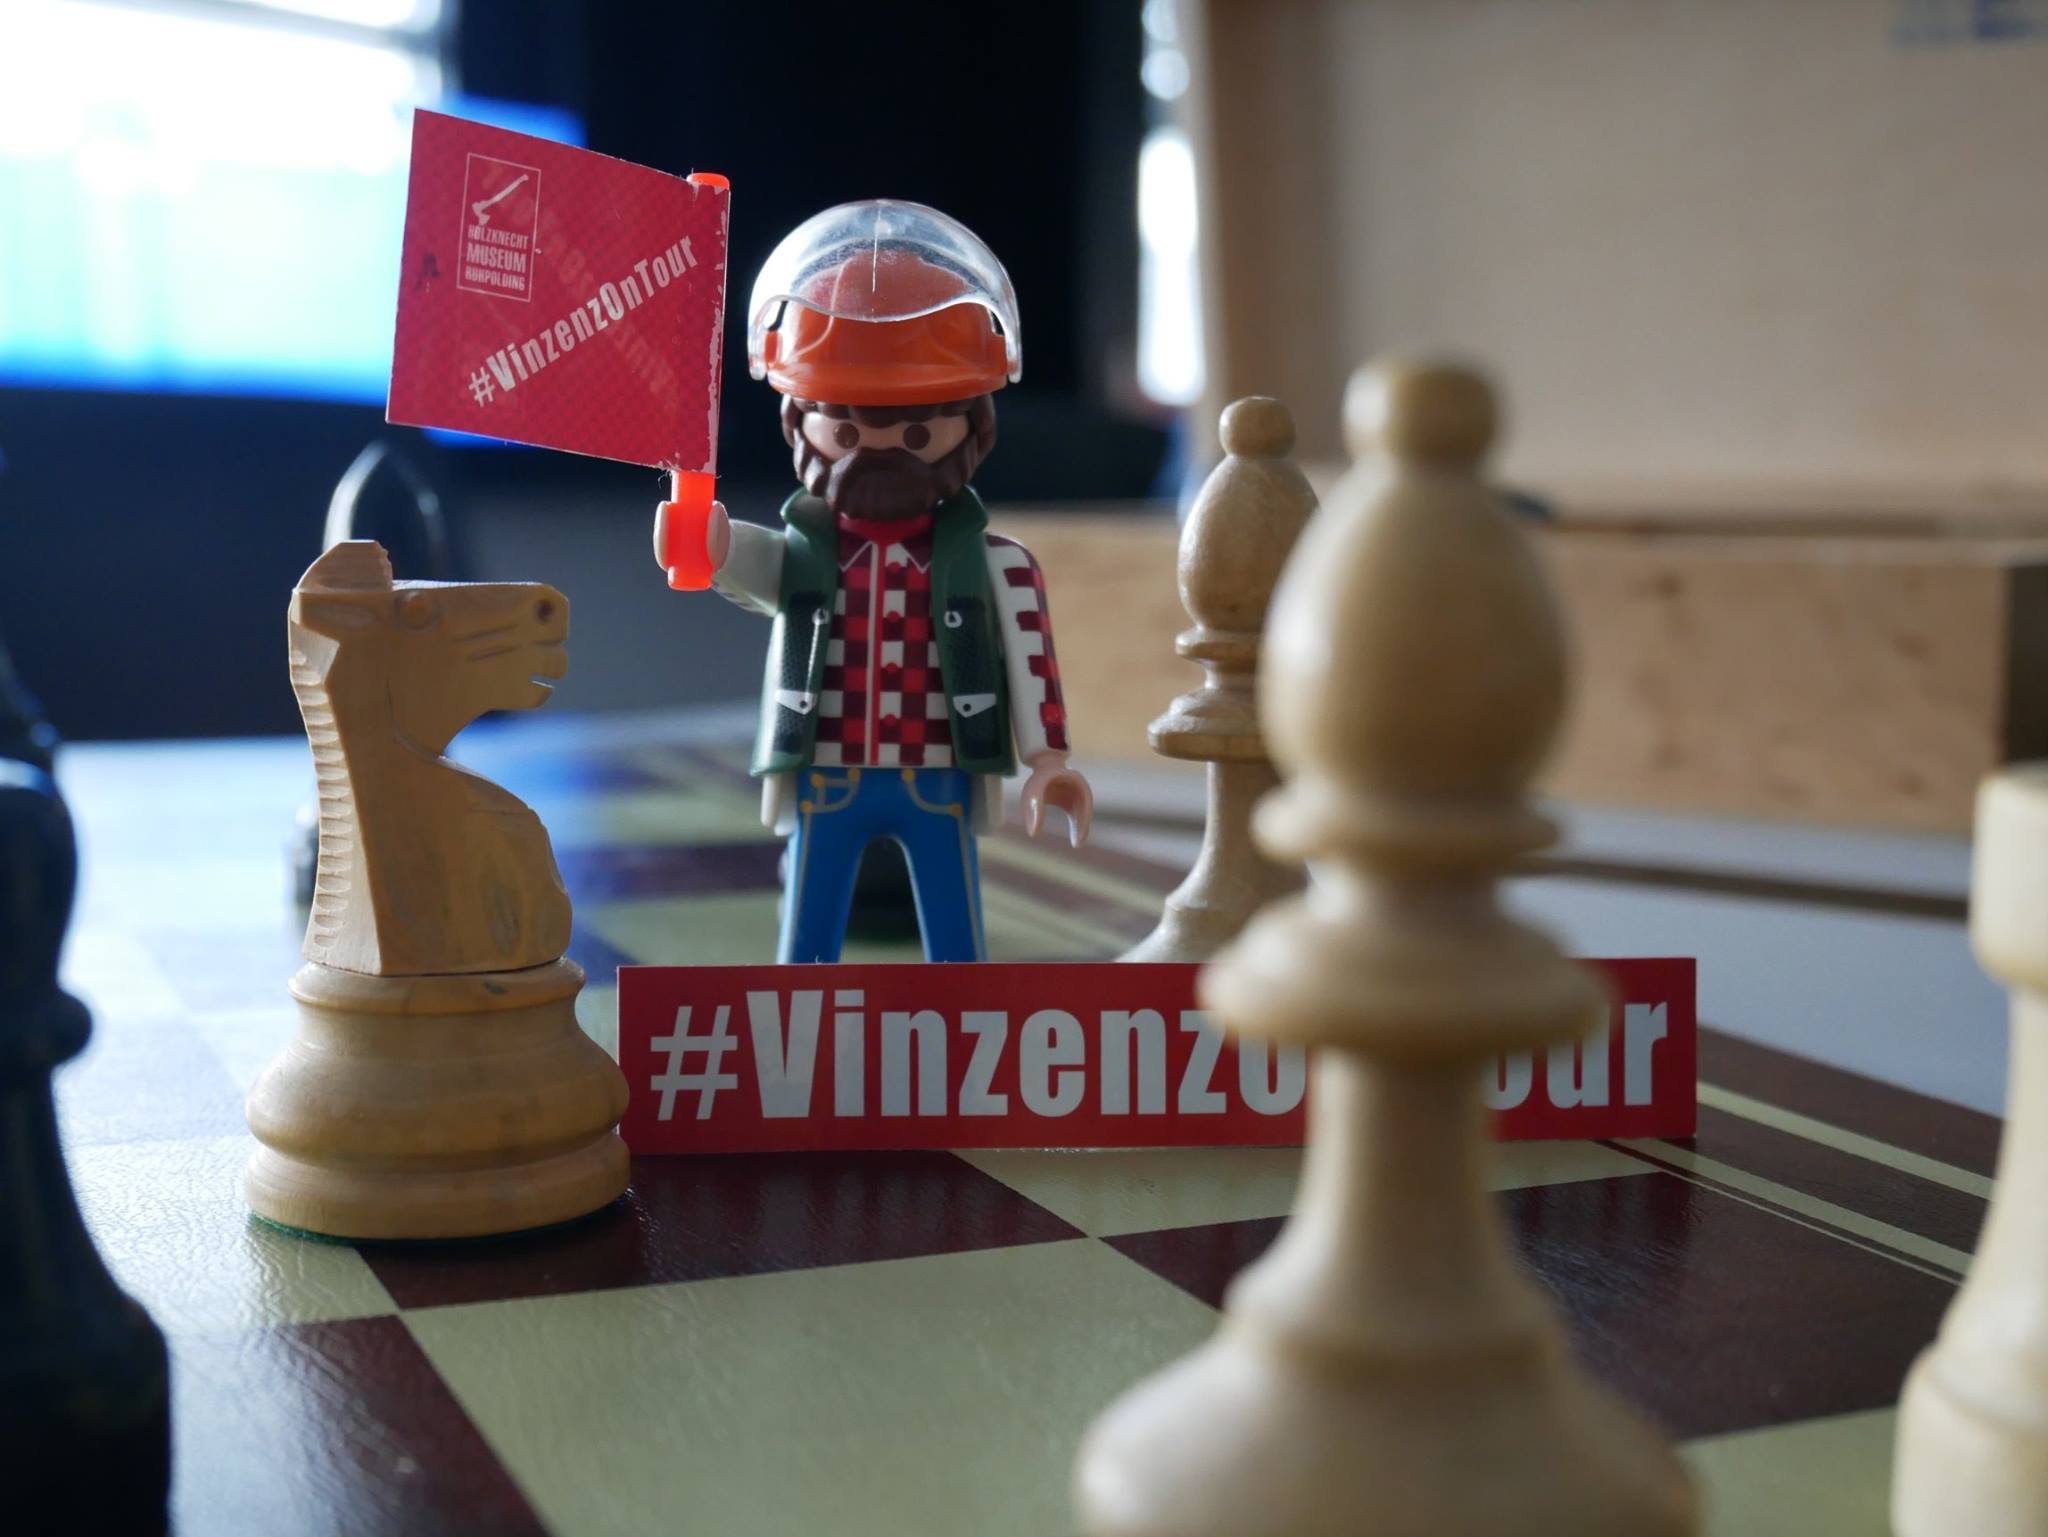 Schach matt! 🤣 #VinzenzOnTour https://t.co/Y7wnORGw3R